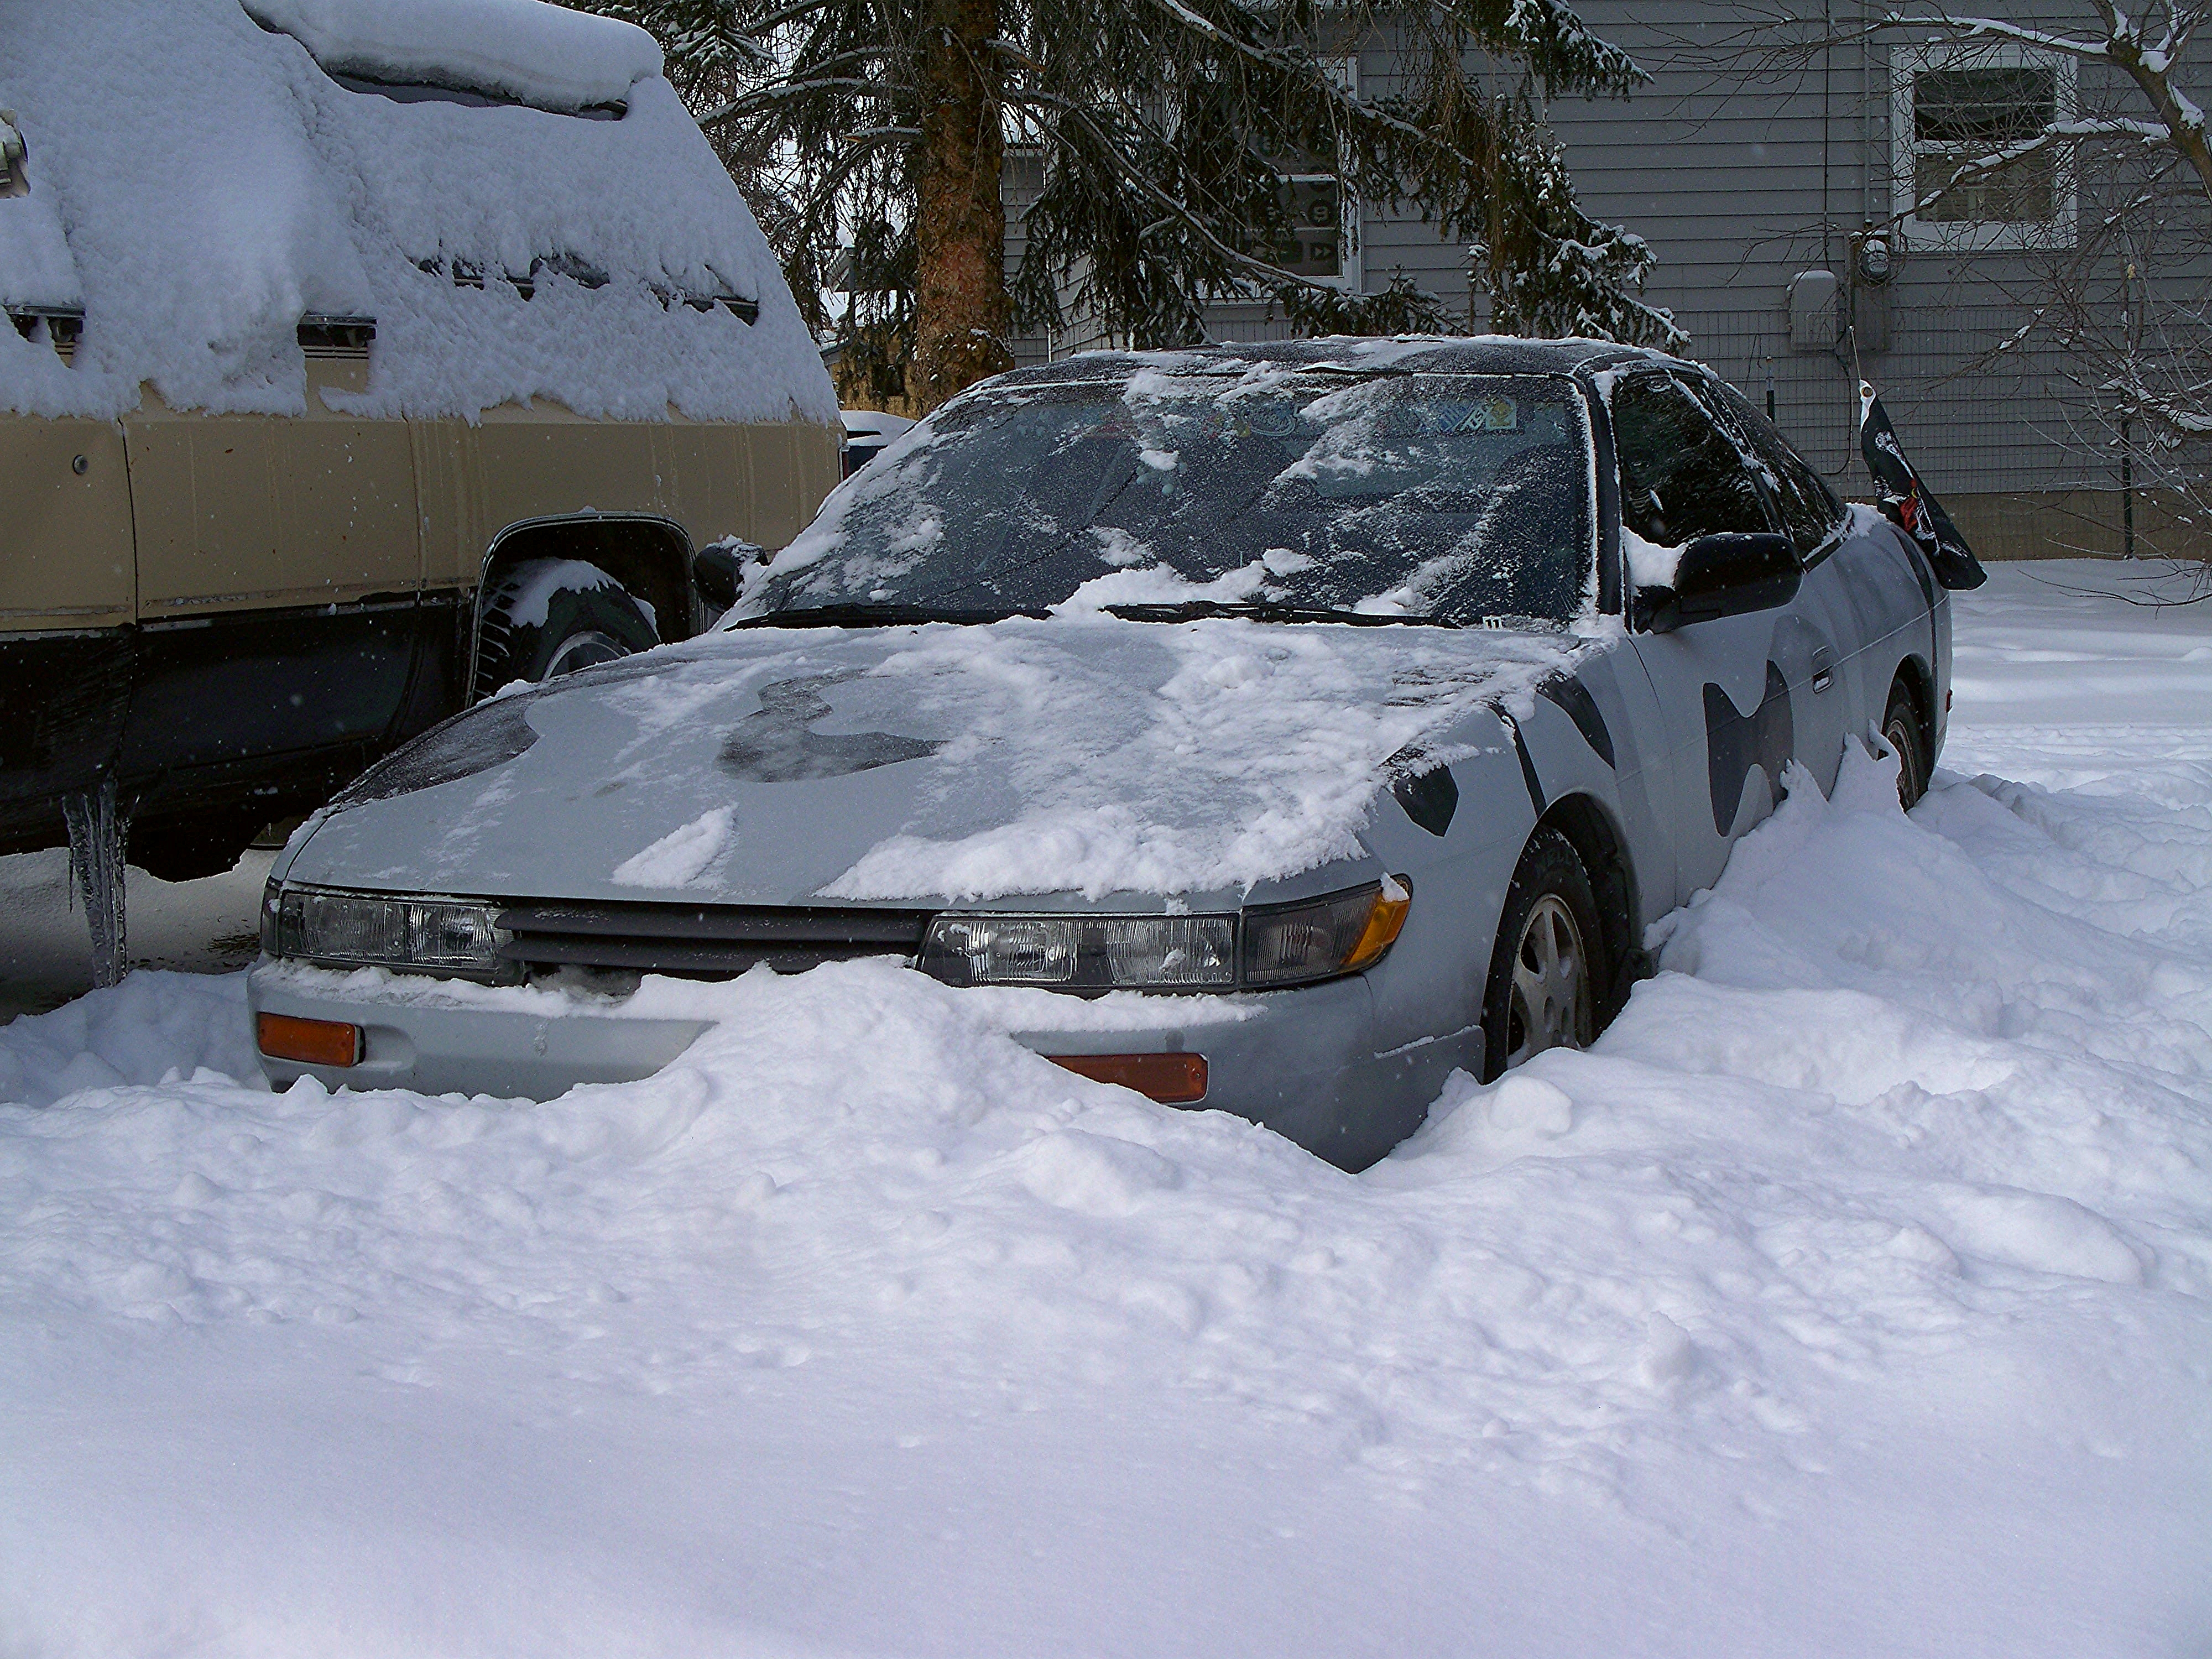 Buried in over 2 feet of snow